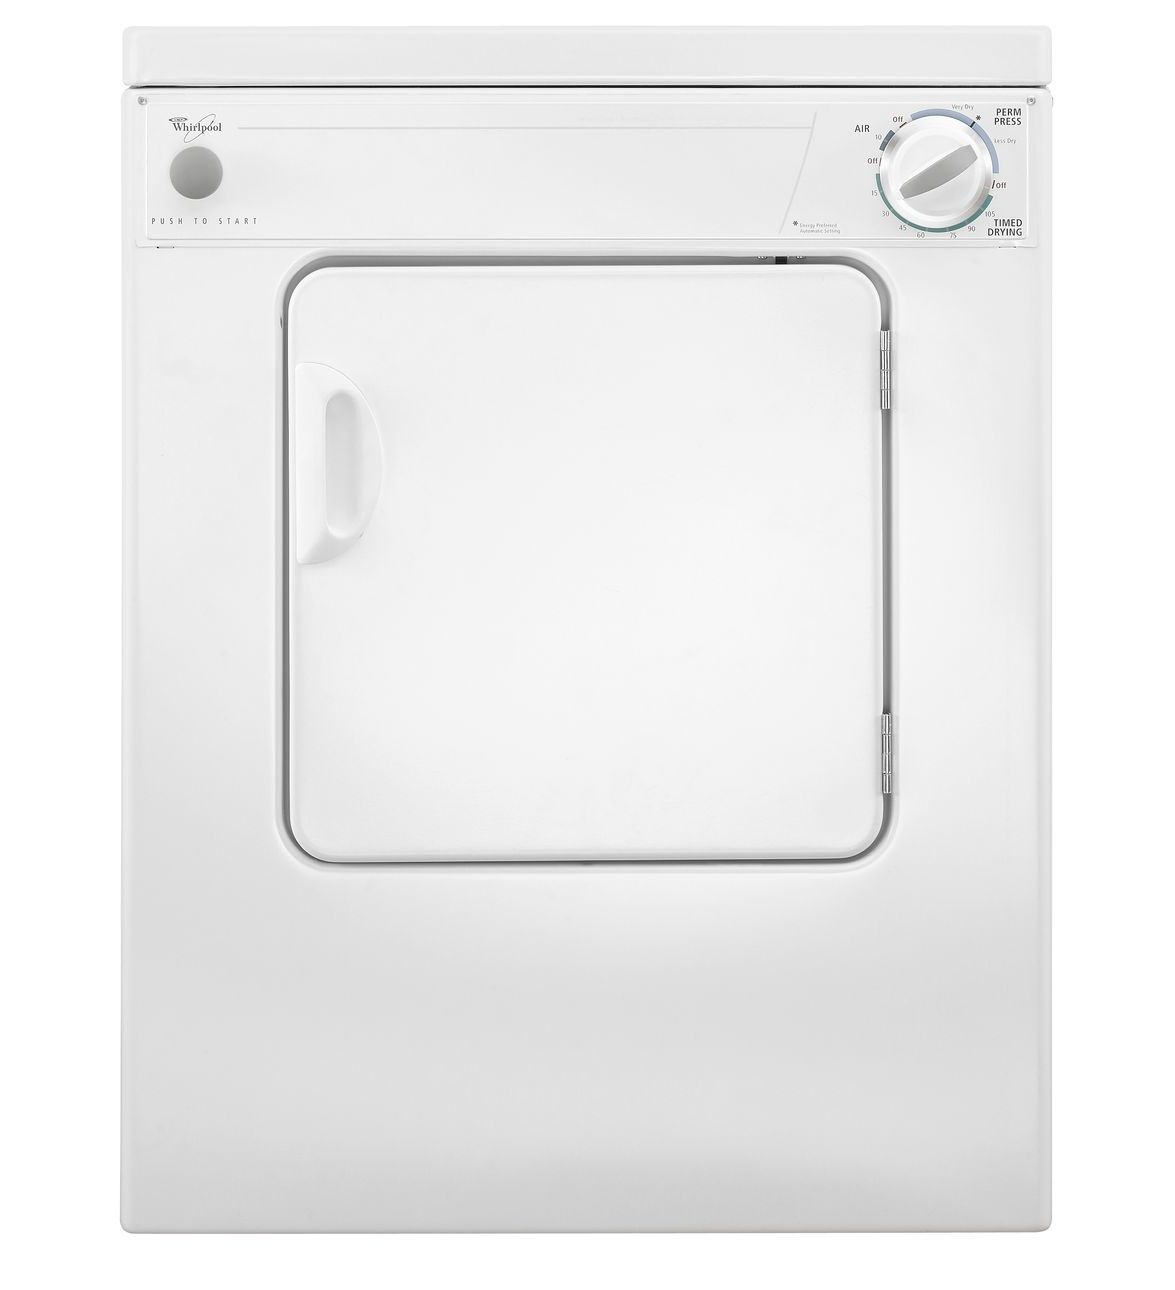 LDR3822PQ WHIRLPOOL Clothes Washer/ Clothes Dryer/ Combo